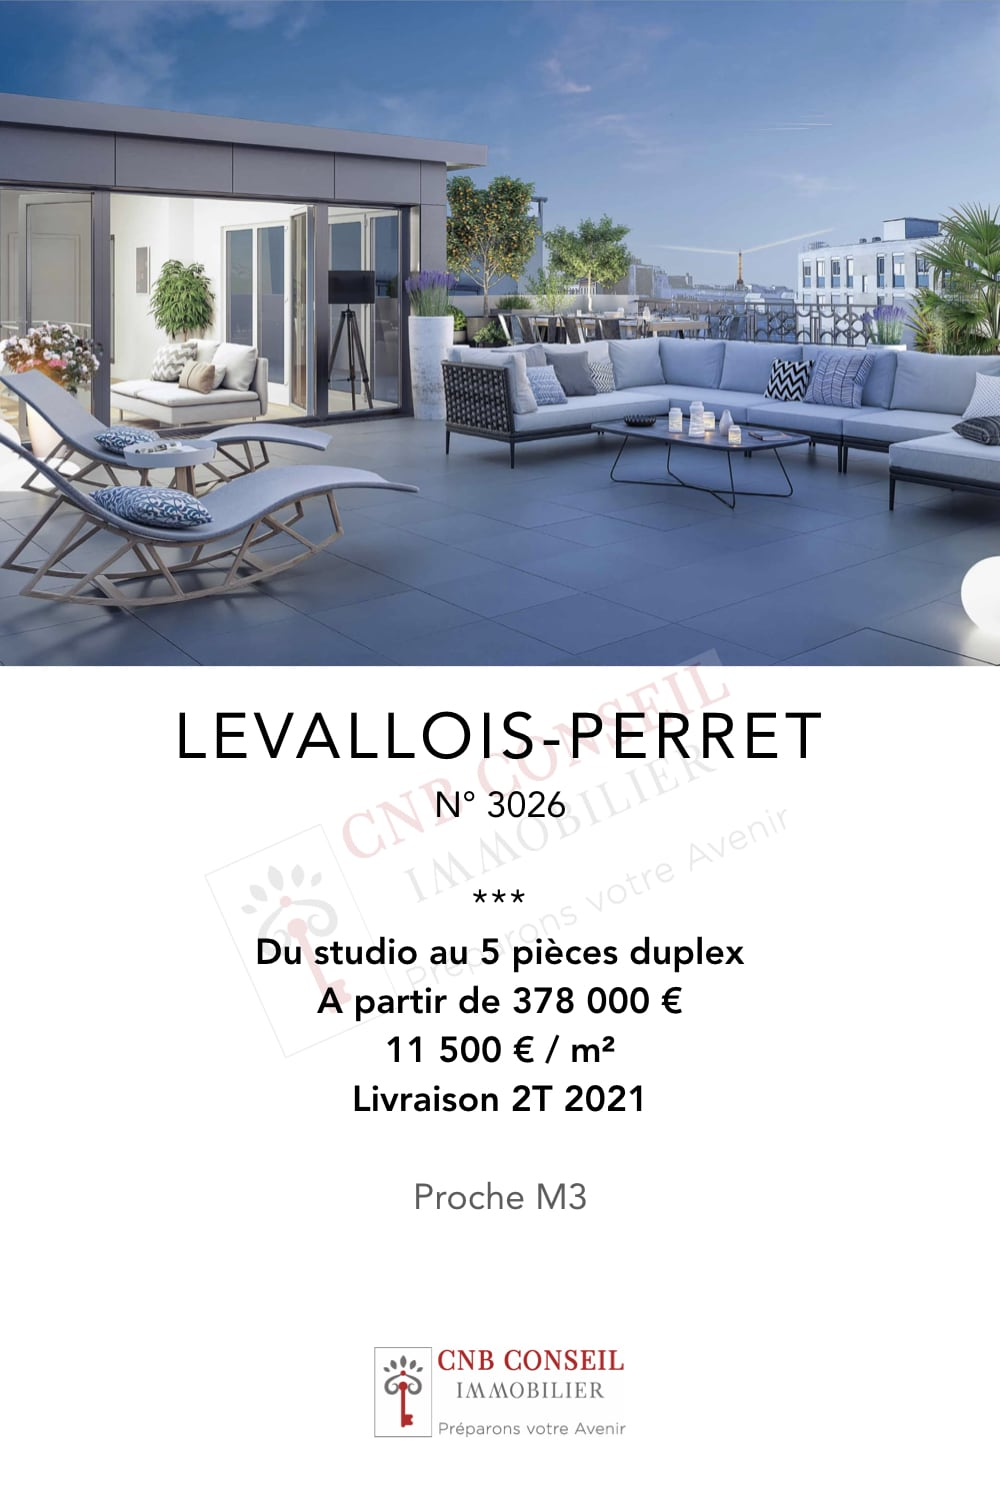 CNB-Conseil-Achat-Immobilier-Neuf-Acheter-Levallois-Perret